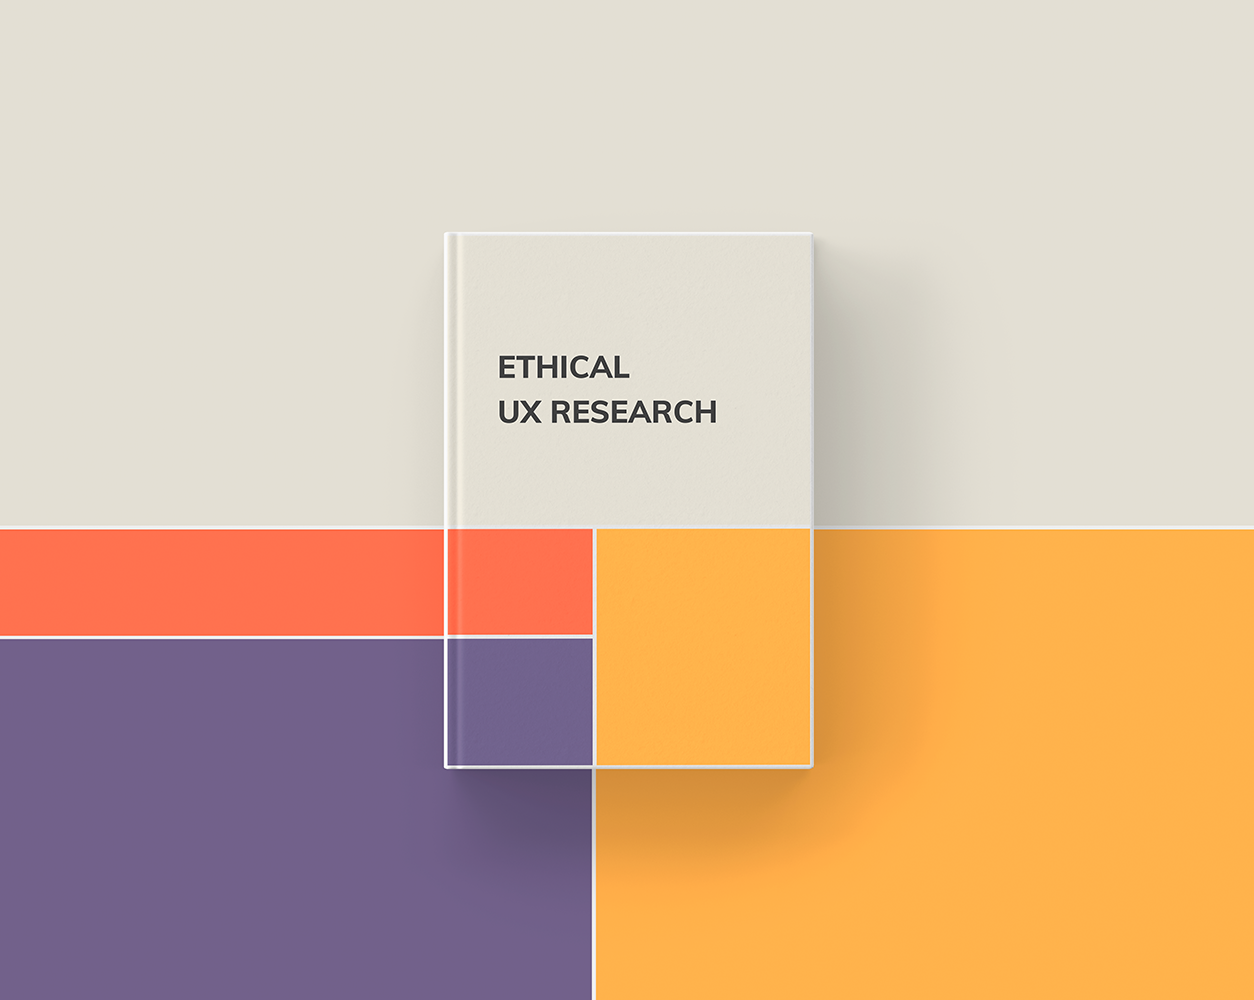 Efficiency and ethics in UX research